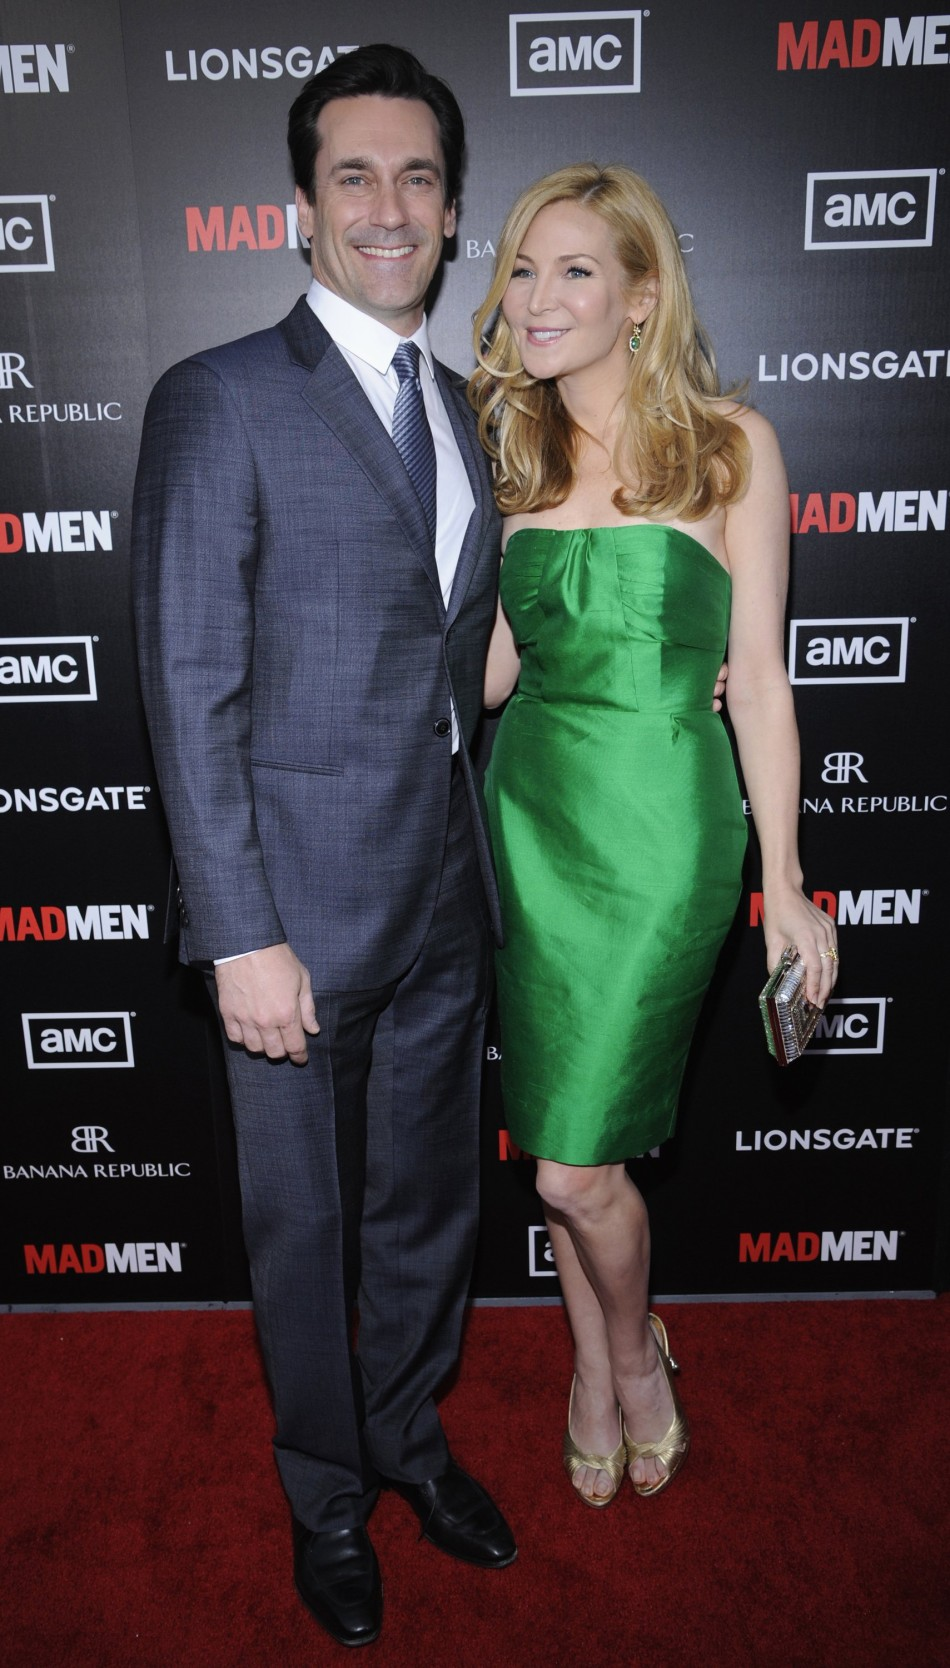 Cast member Hamm and actress Westfeldt attend a premiere screening of quotMad Menquot in Los Angeles